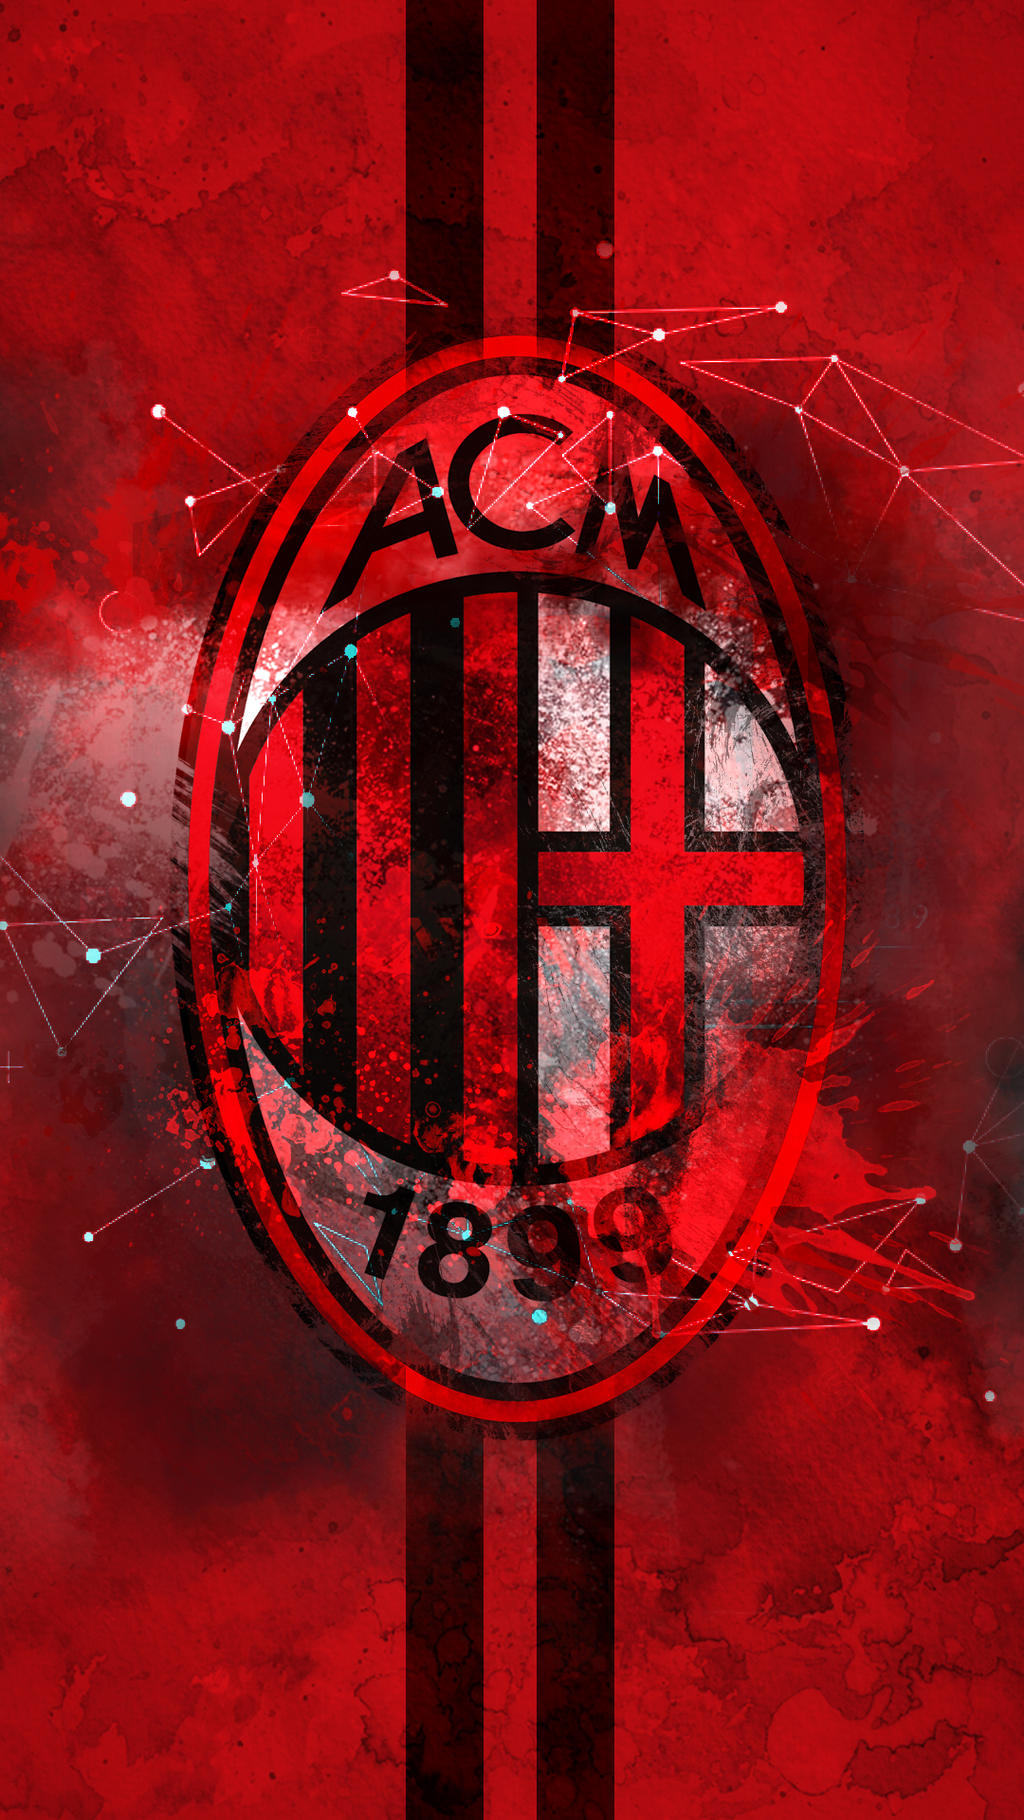 Hd wallpaper ac milan -  Ac Milan Hd Logo Wallpaper By Kerimov23